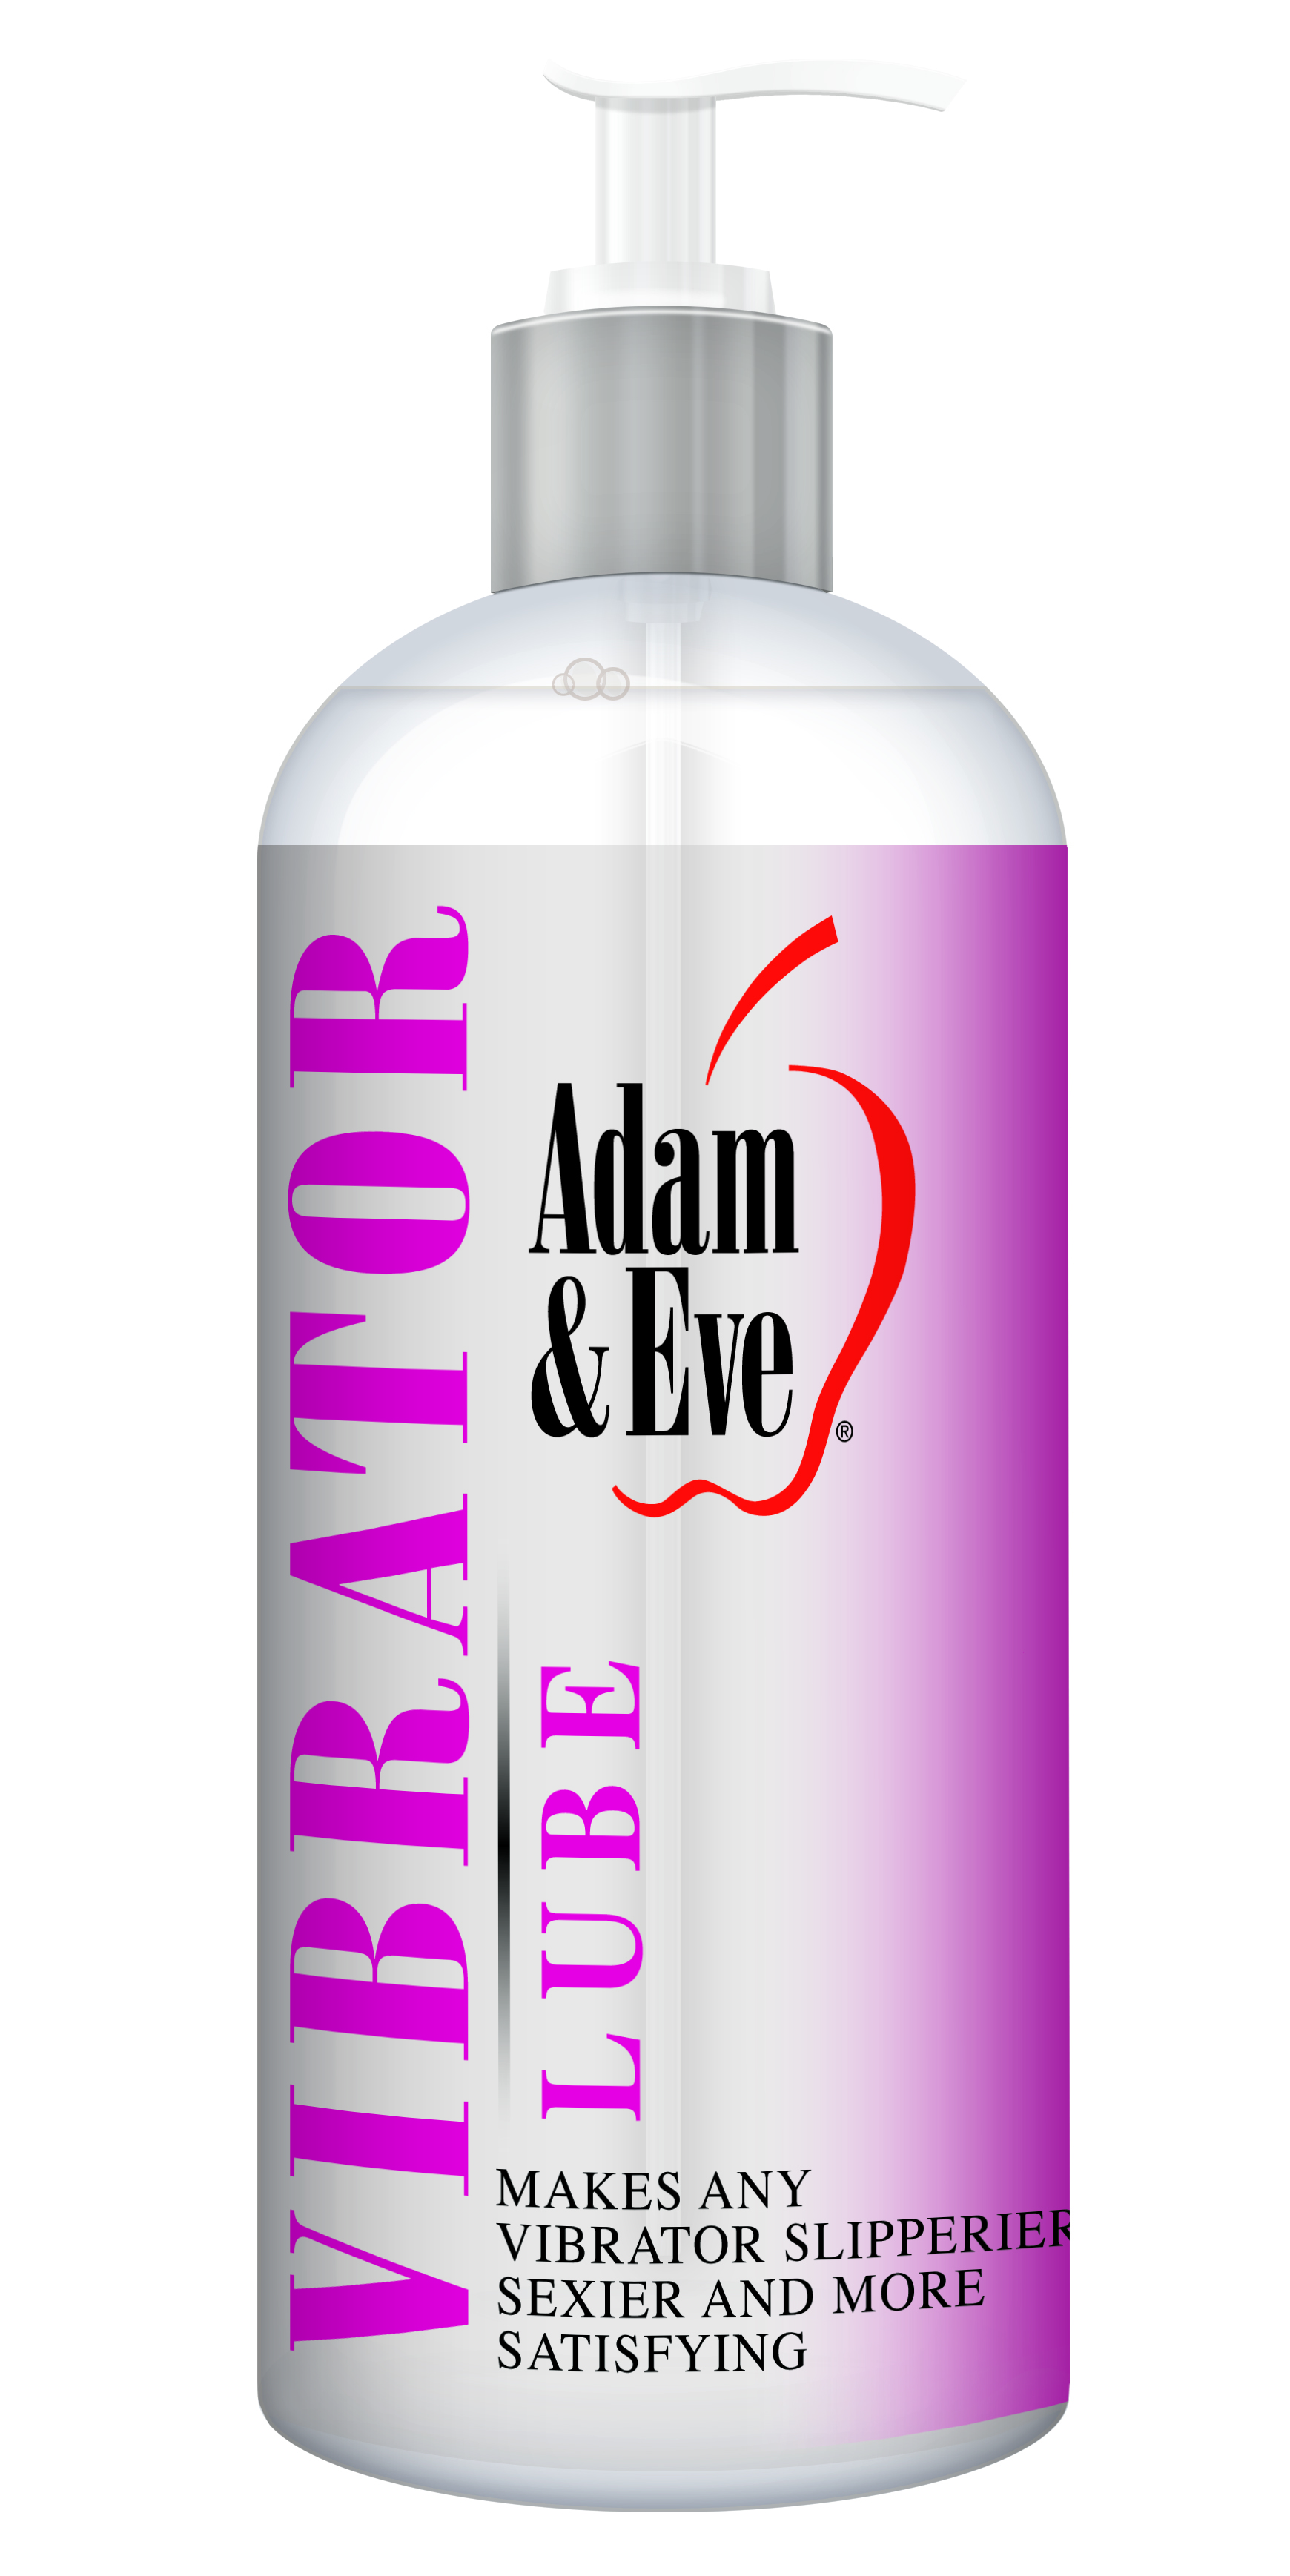 ADAM & EVE VIBRATOR LUBE 16OZ